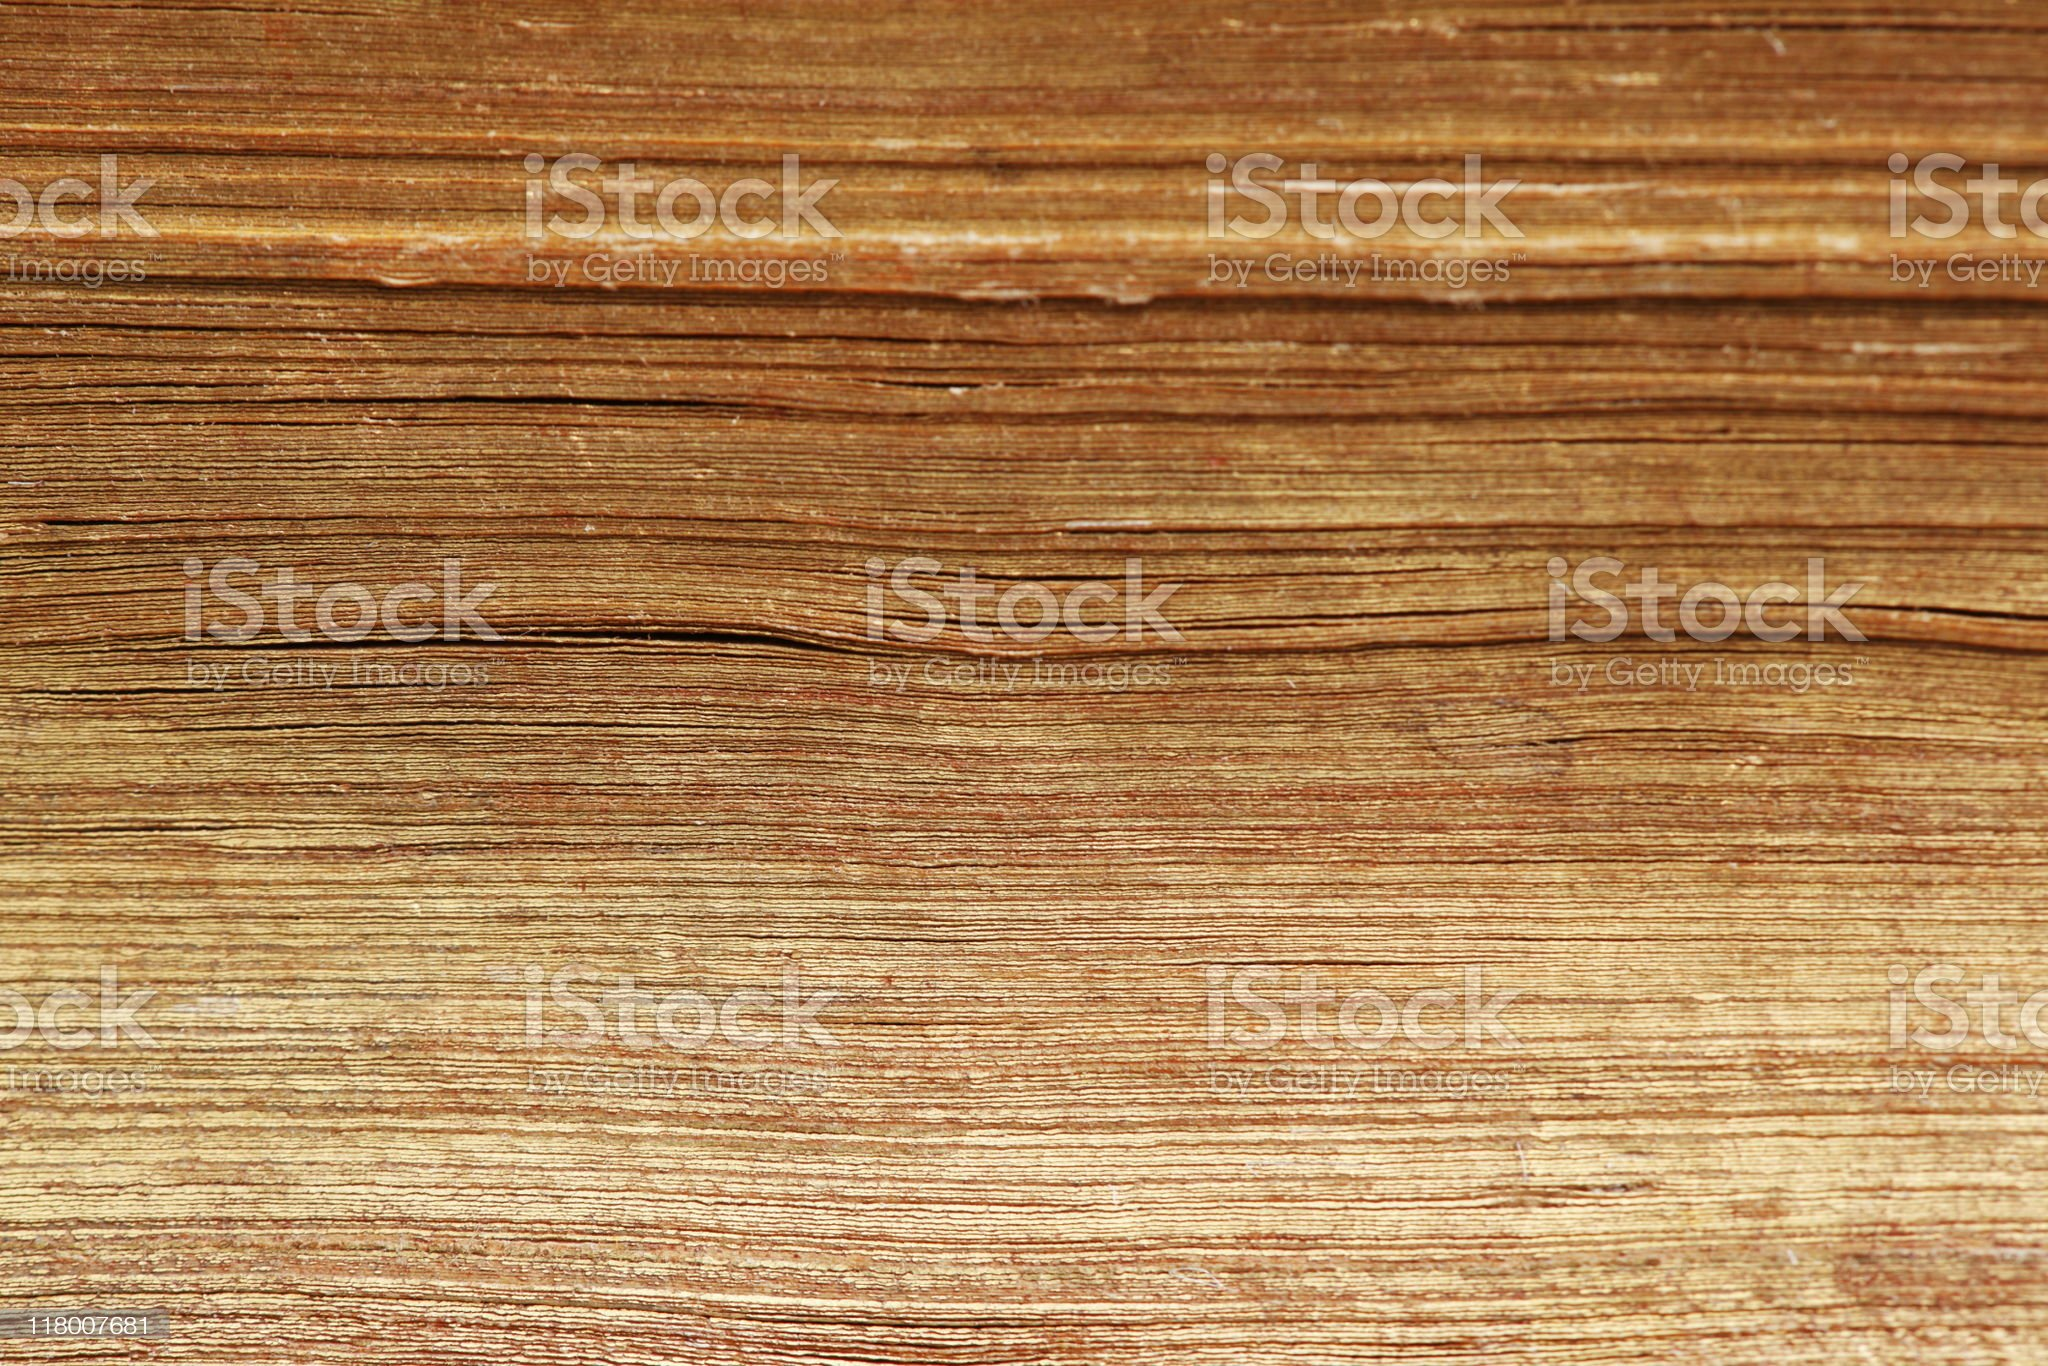 Golden pages royalty-free stock photo